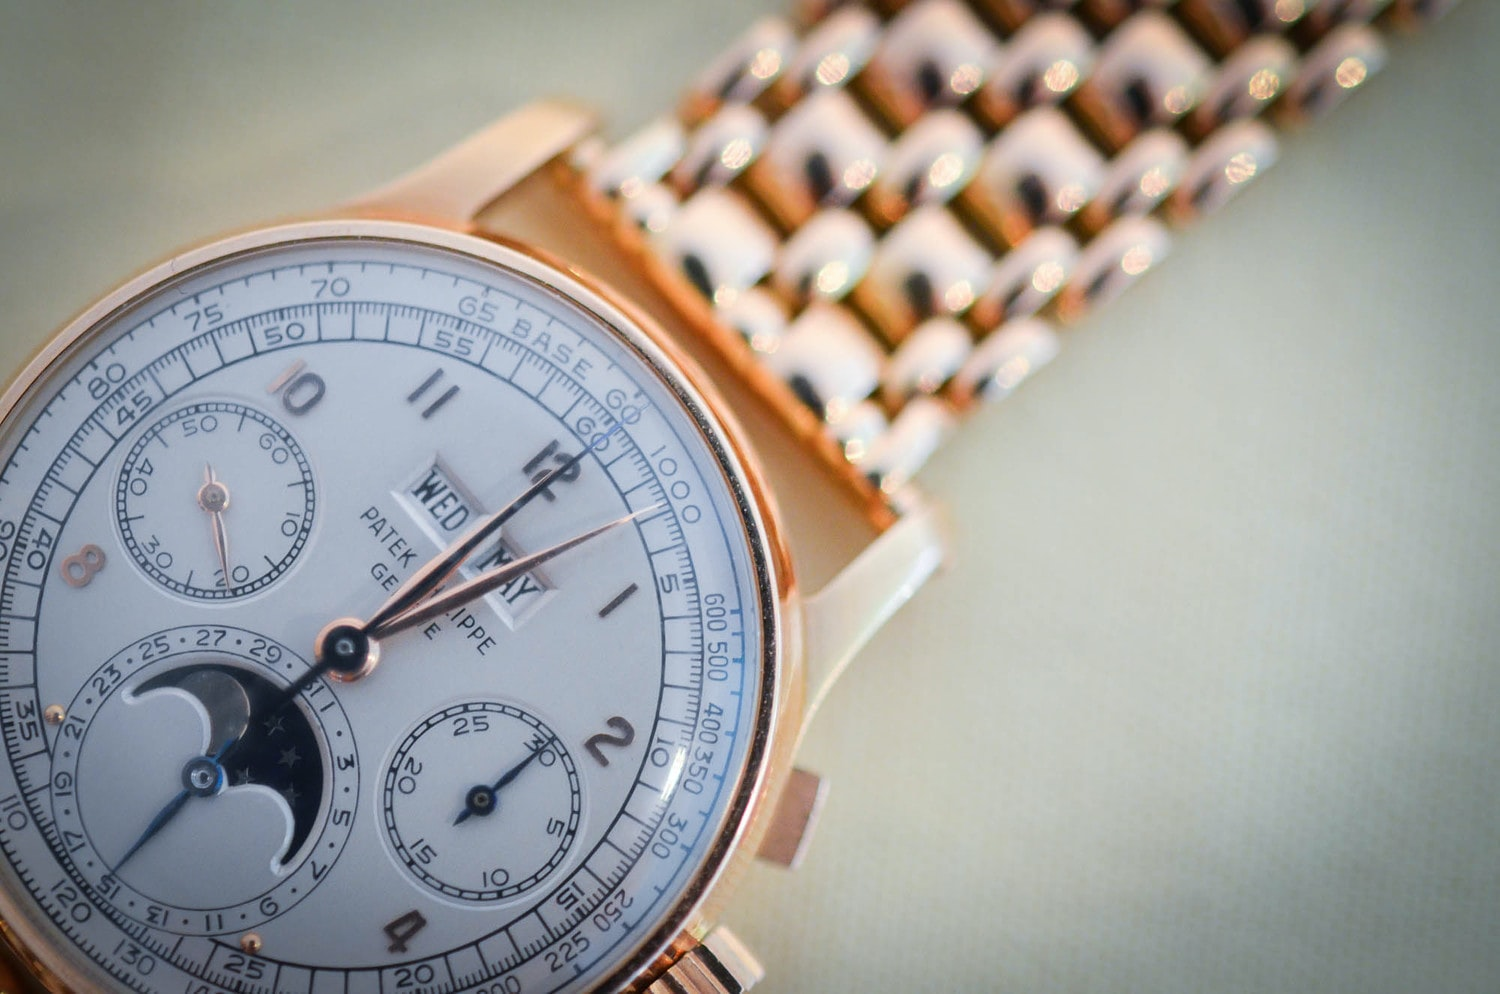 Hands-On: With The Patek Philippe Perpetual Calendar Chronograph Reference 1518 In Pink Gold, For Sale Today At Antiquroum